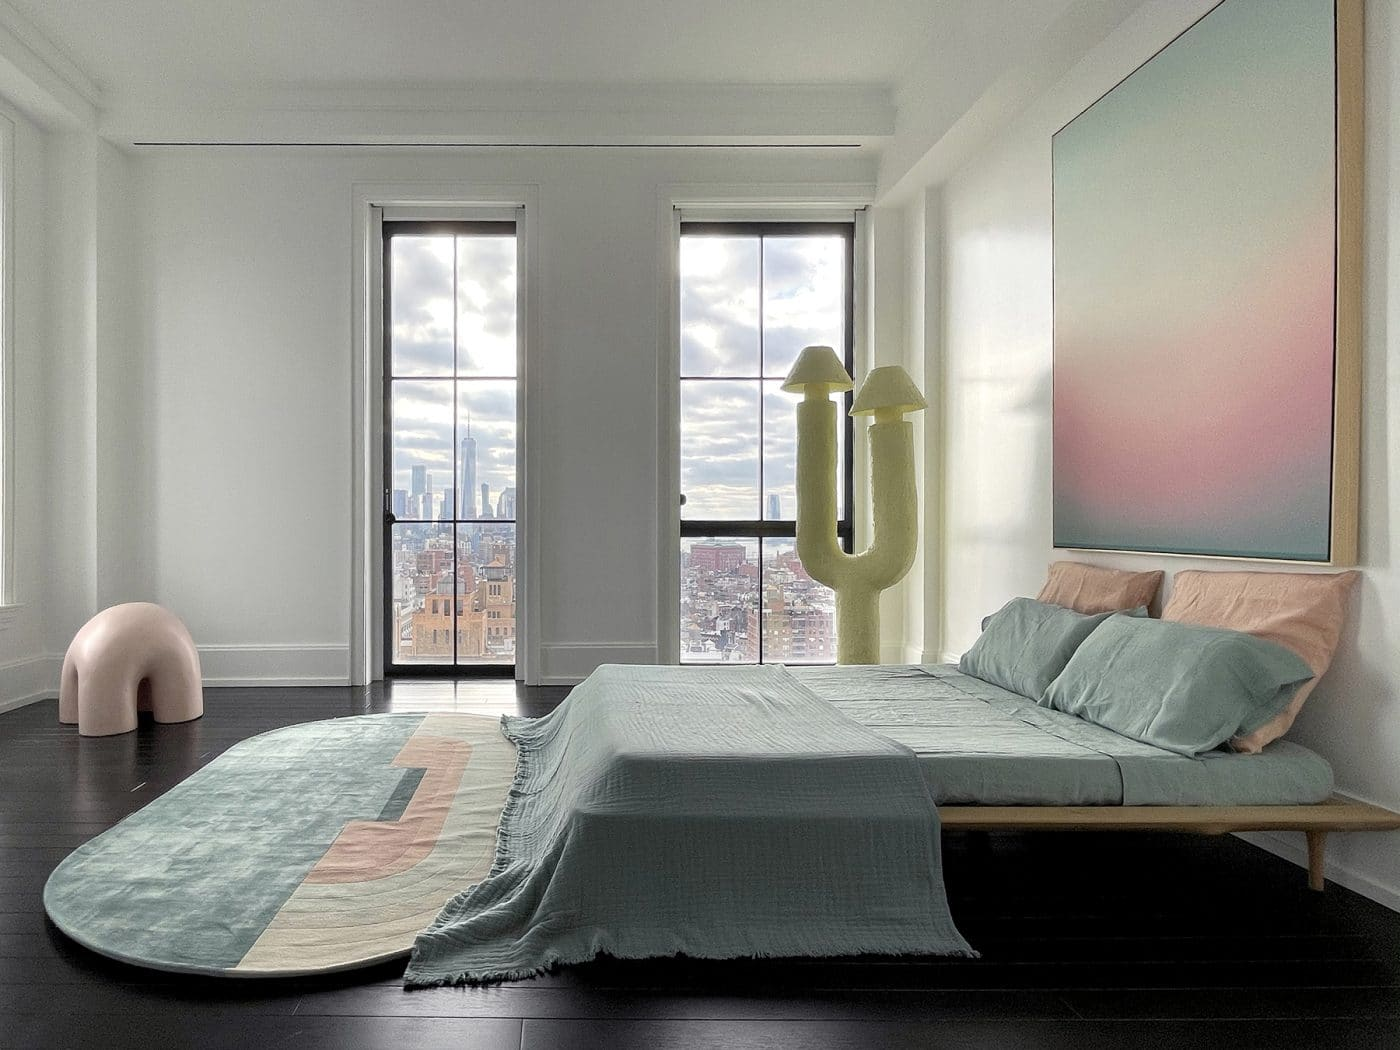 One of the bedrooms in Galerie Philia's staged apartment in New York's Walker Tower